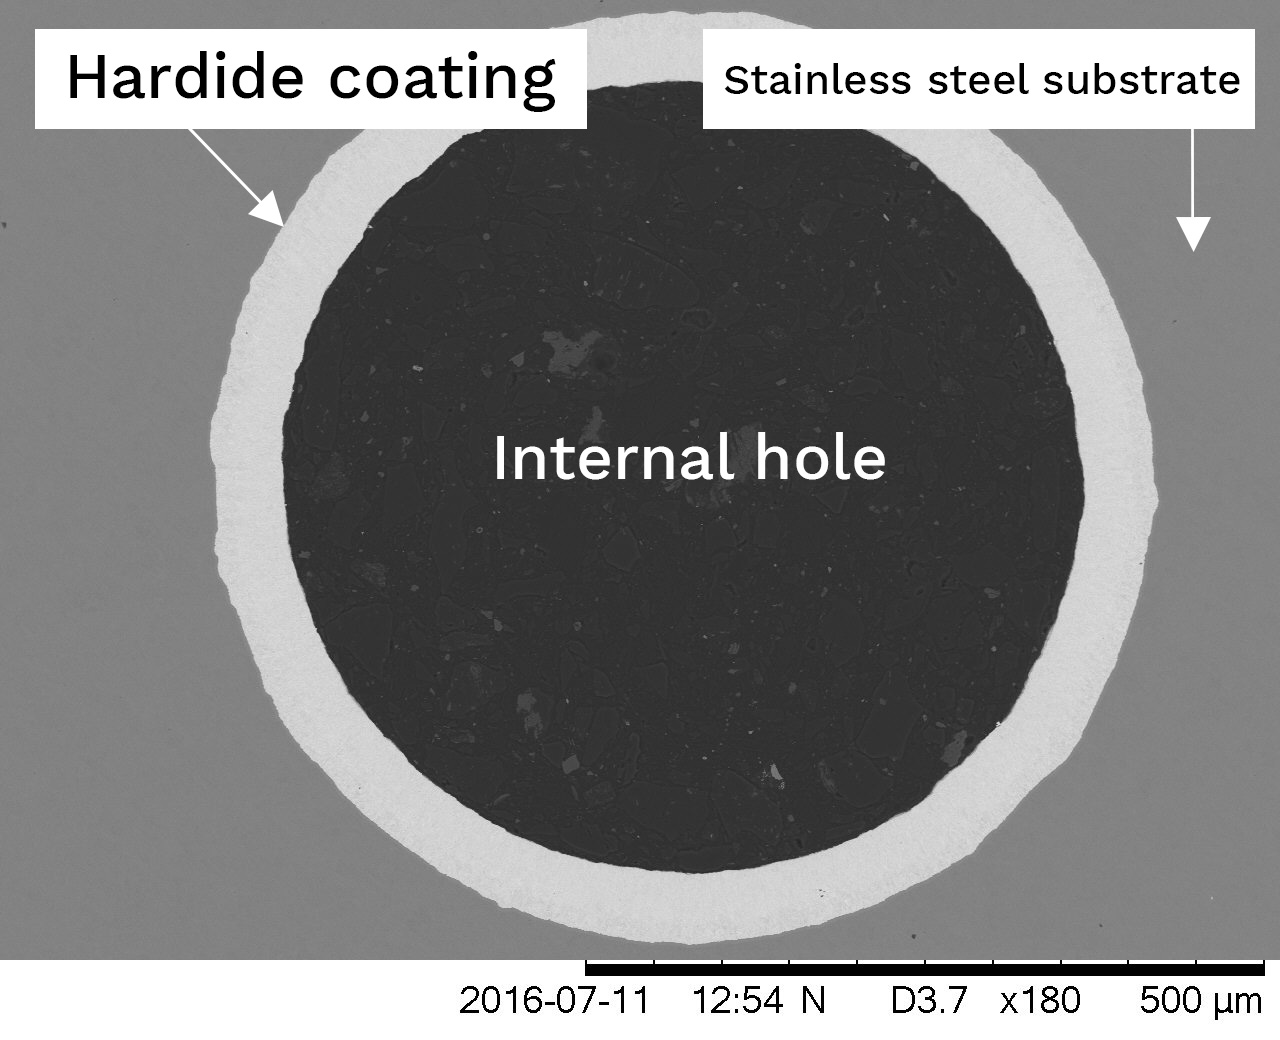 Internal hole coated with Hardide Coating